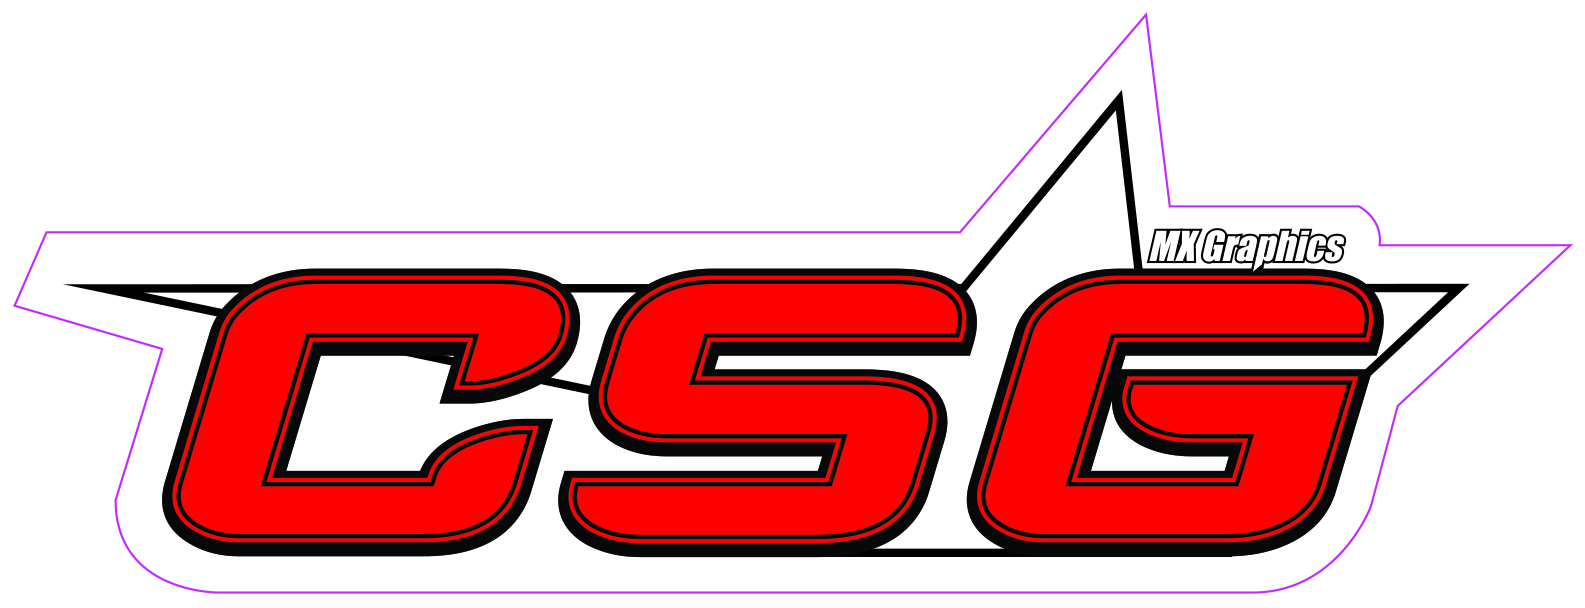 Csg logo need critique brands of the world download for Need a logo created